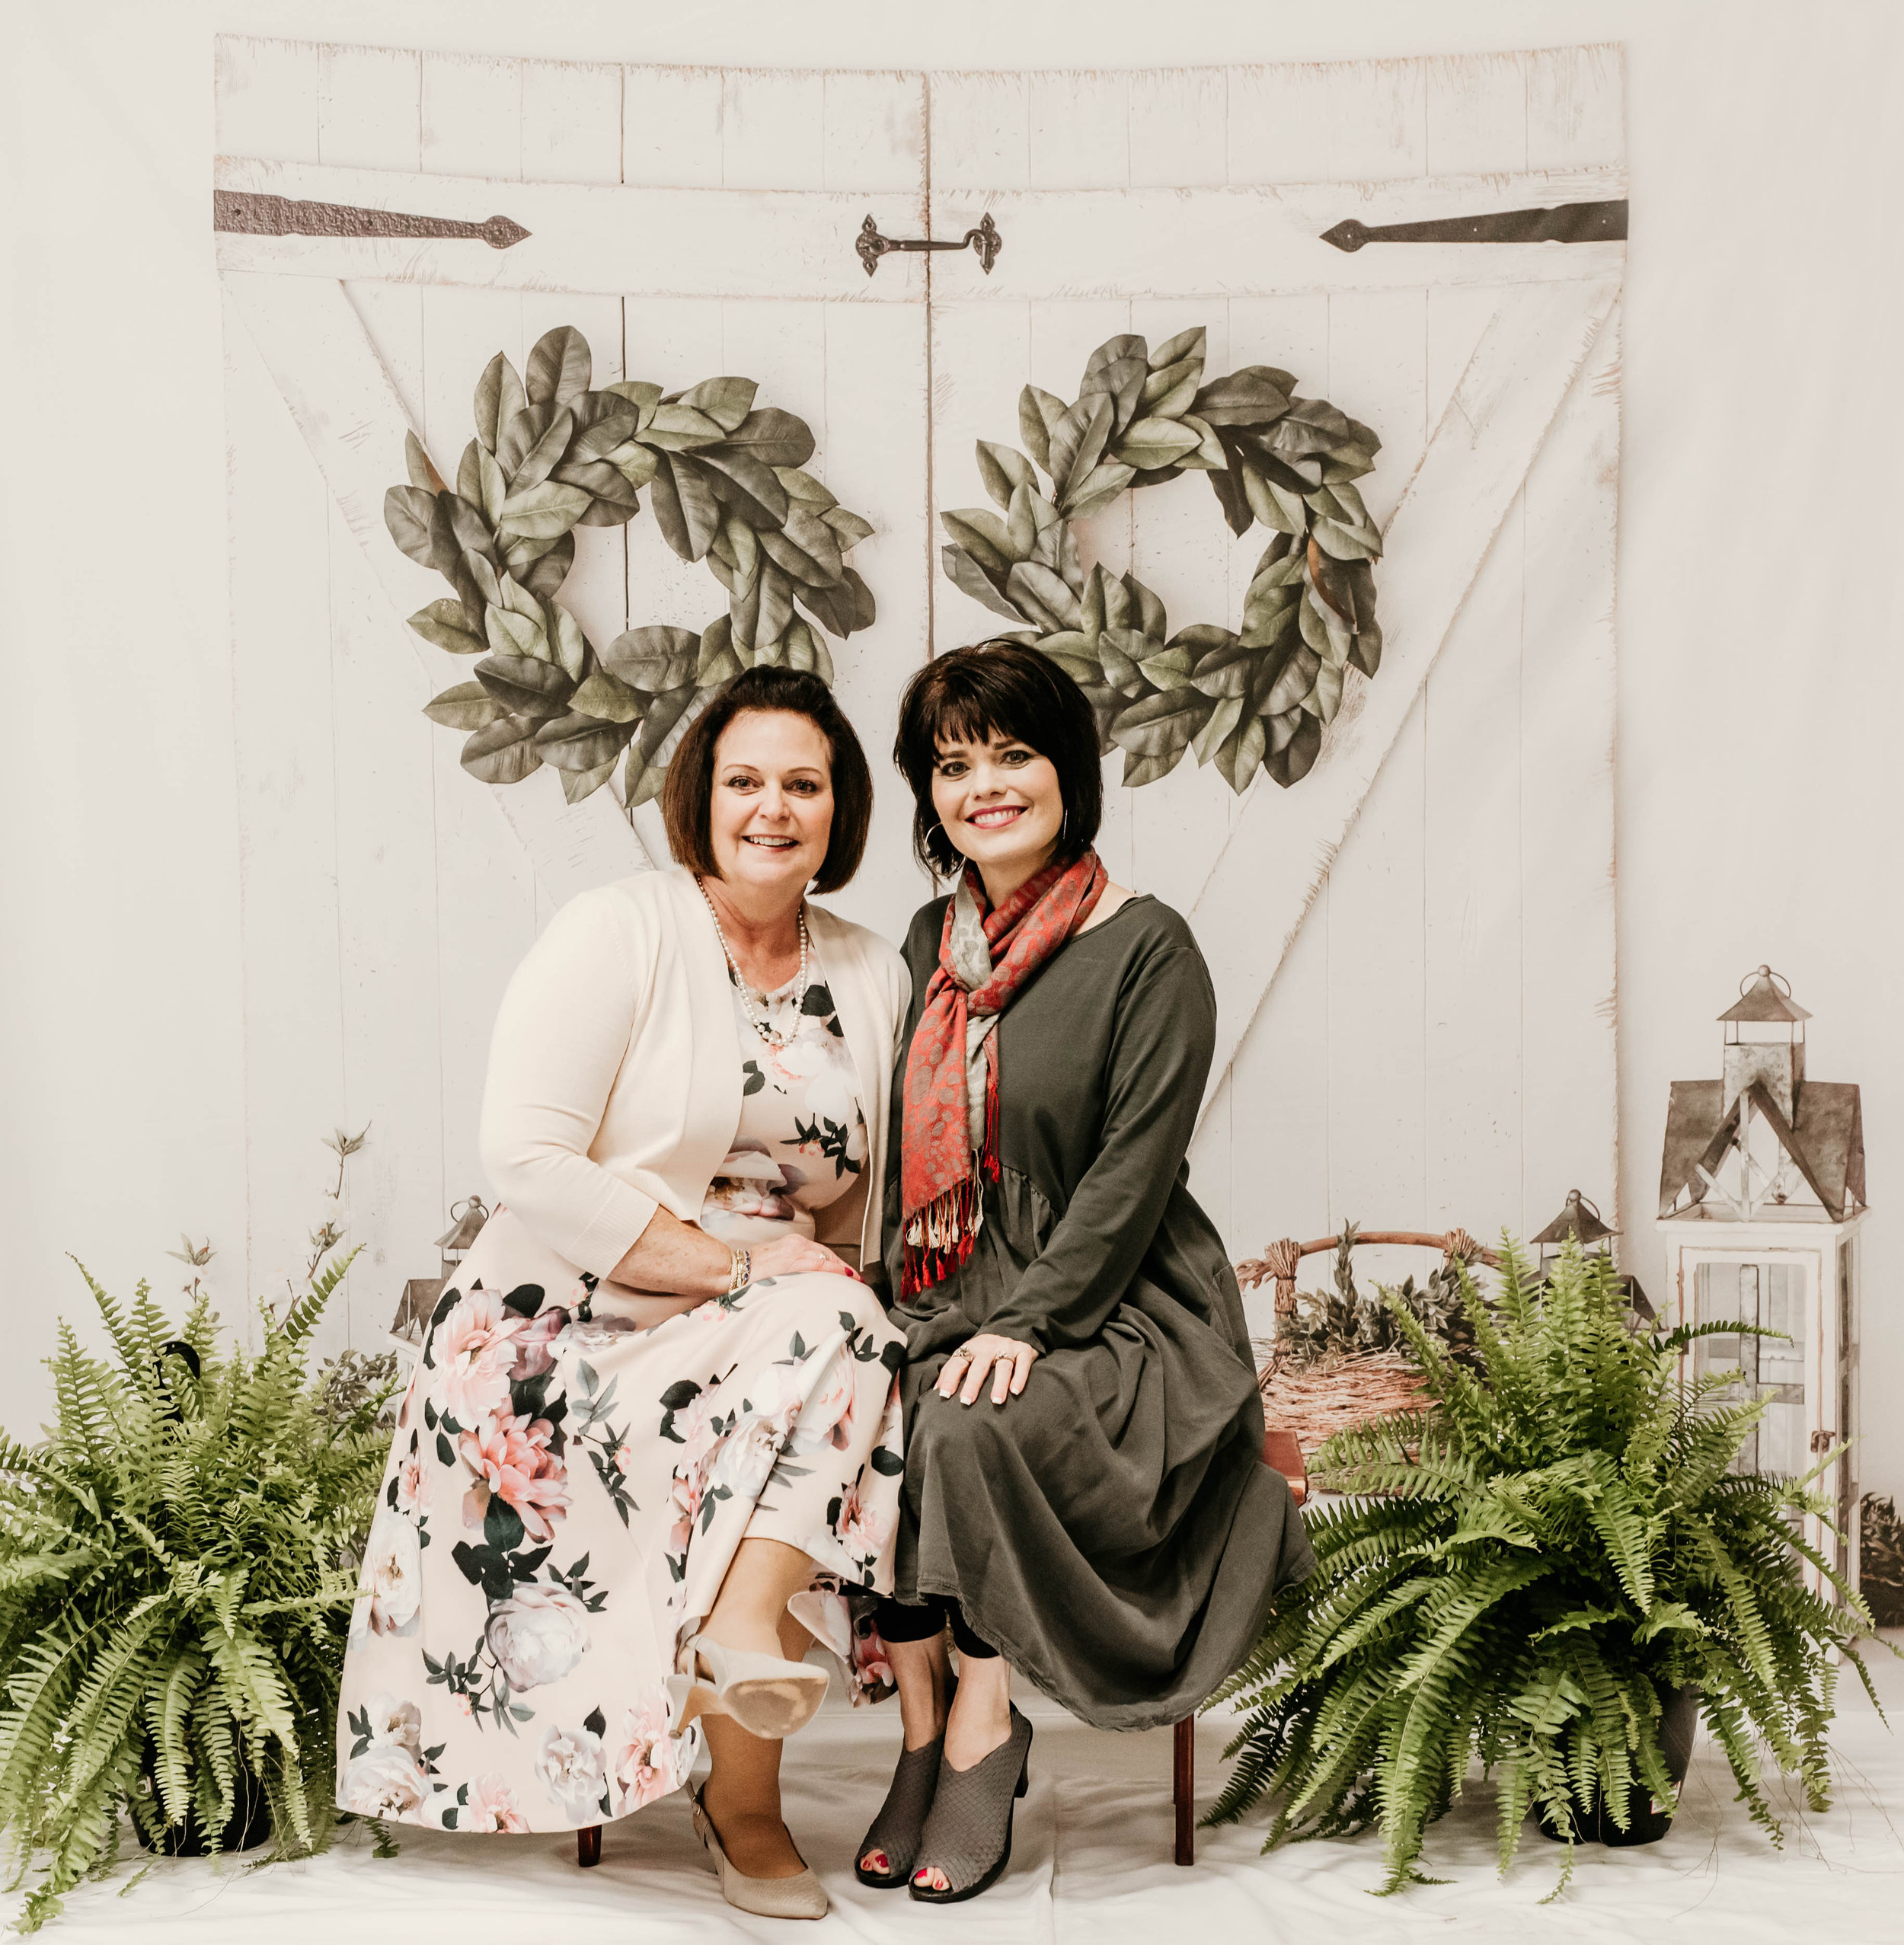 Pictured above Linda Miller and Kirsten Hart